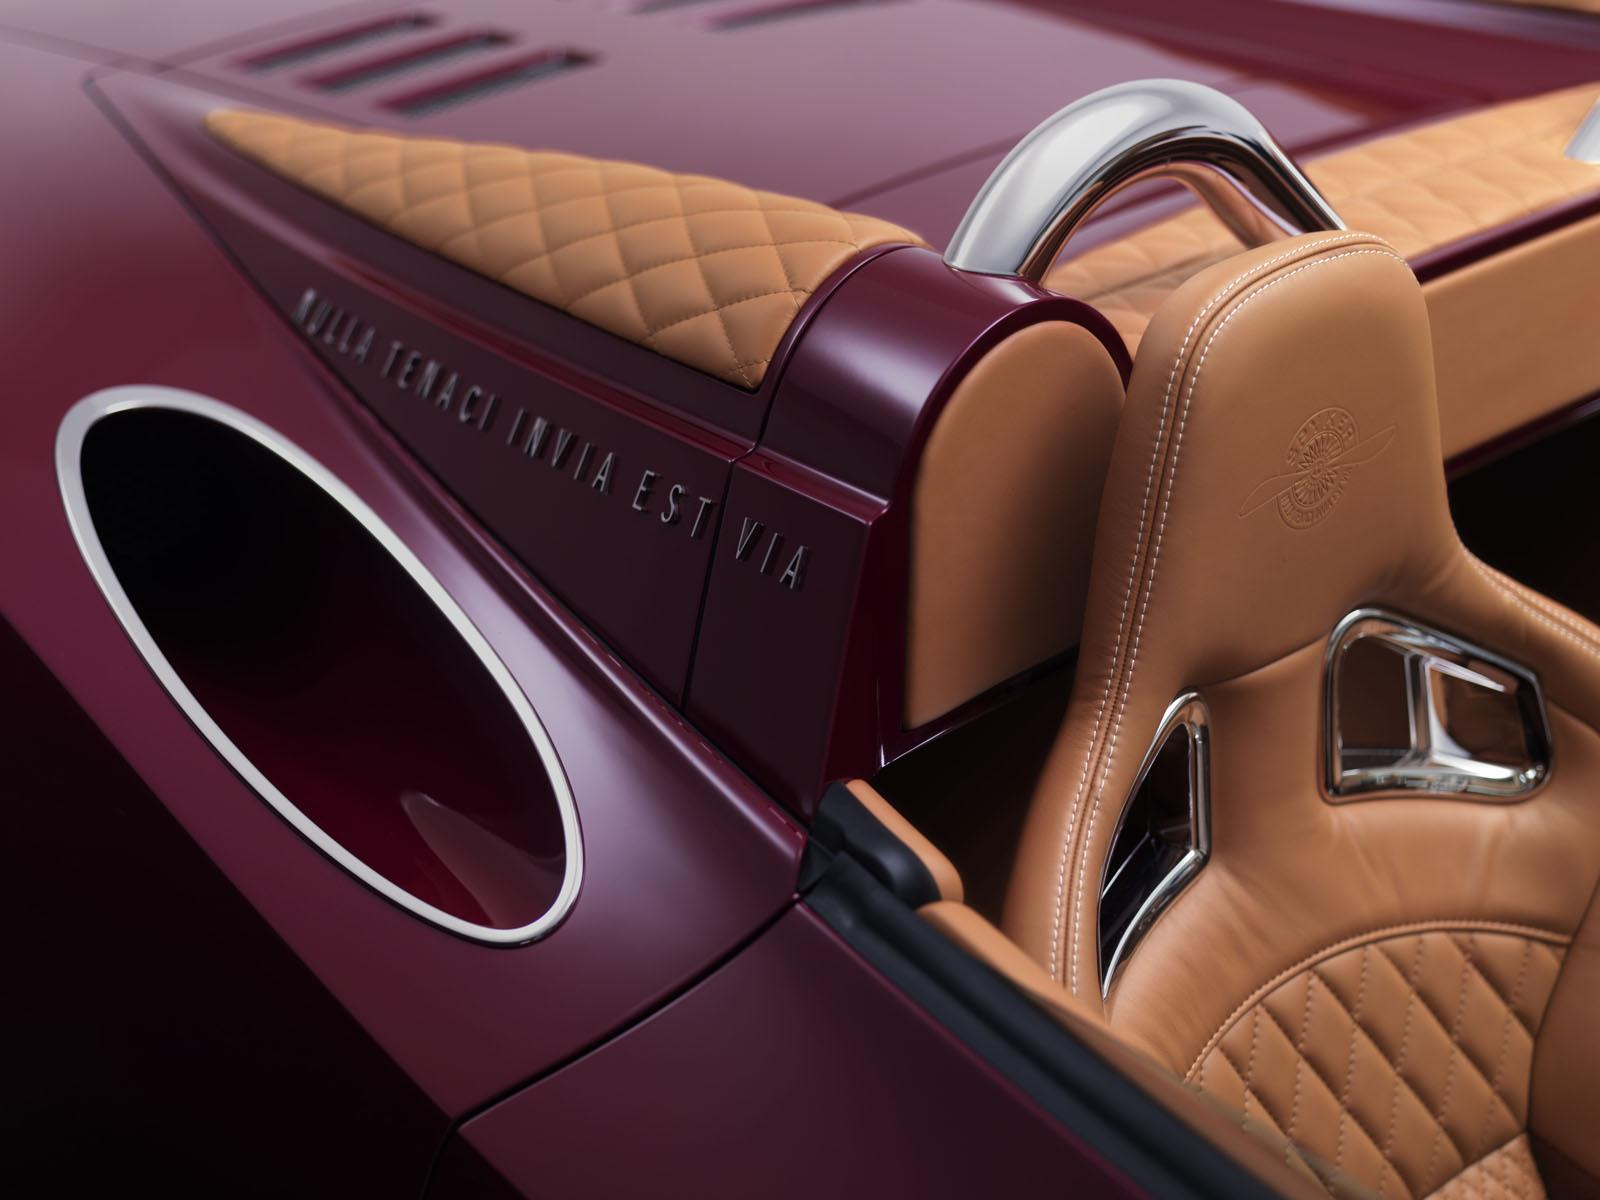 spyker b6 venator spyder concept to make european debut at